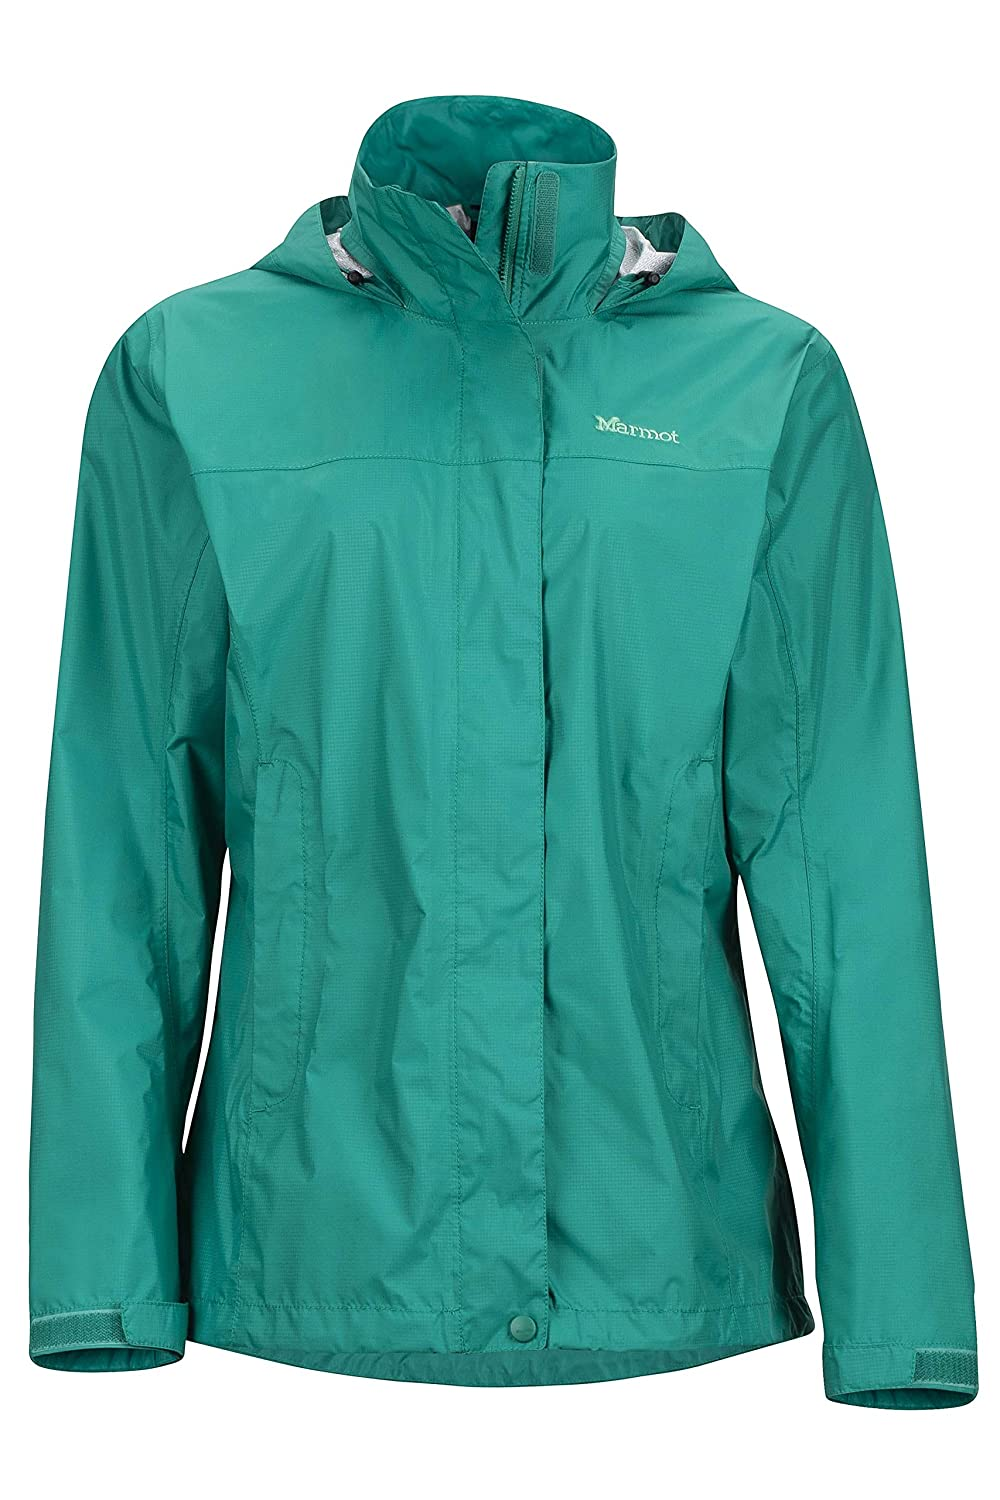 Green Garnet Marmot PreCip Women's Lightweight Waterproof Rain Jacket